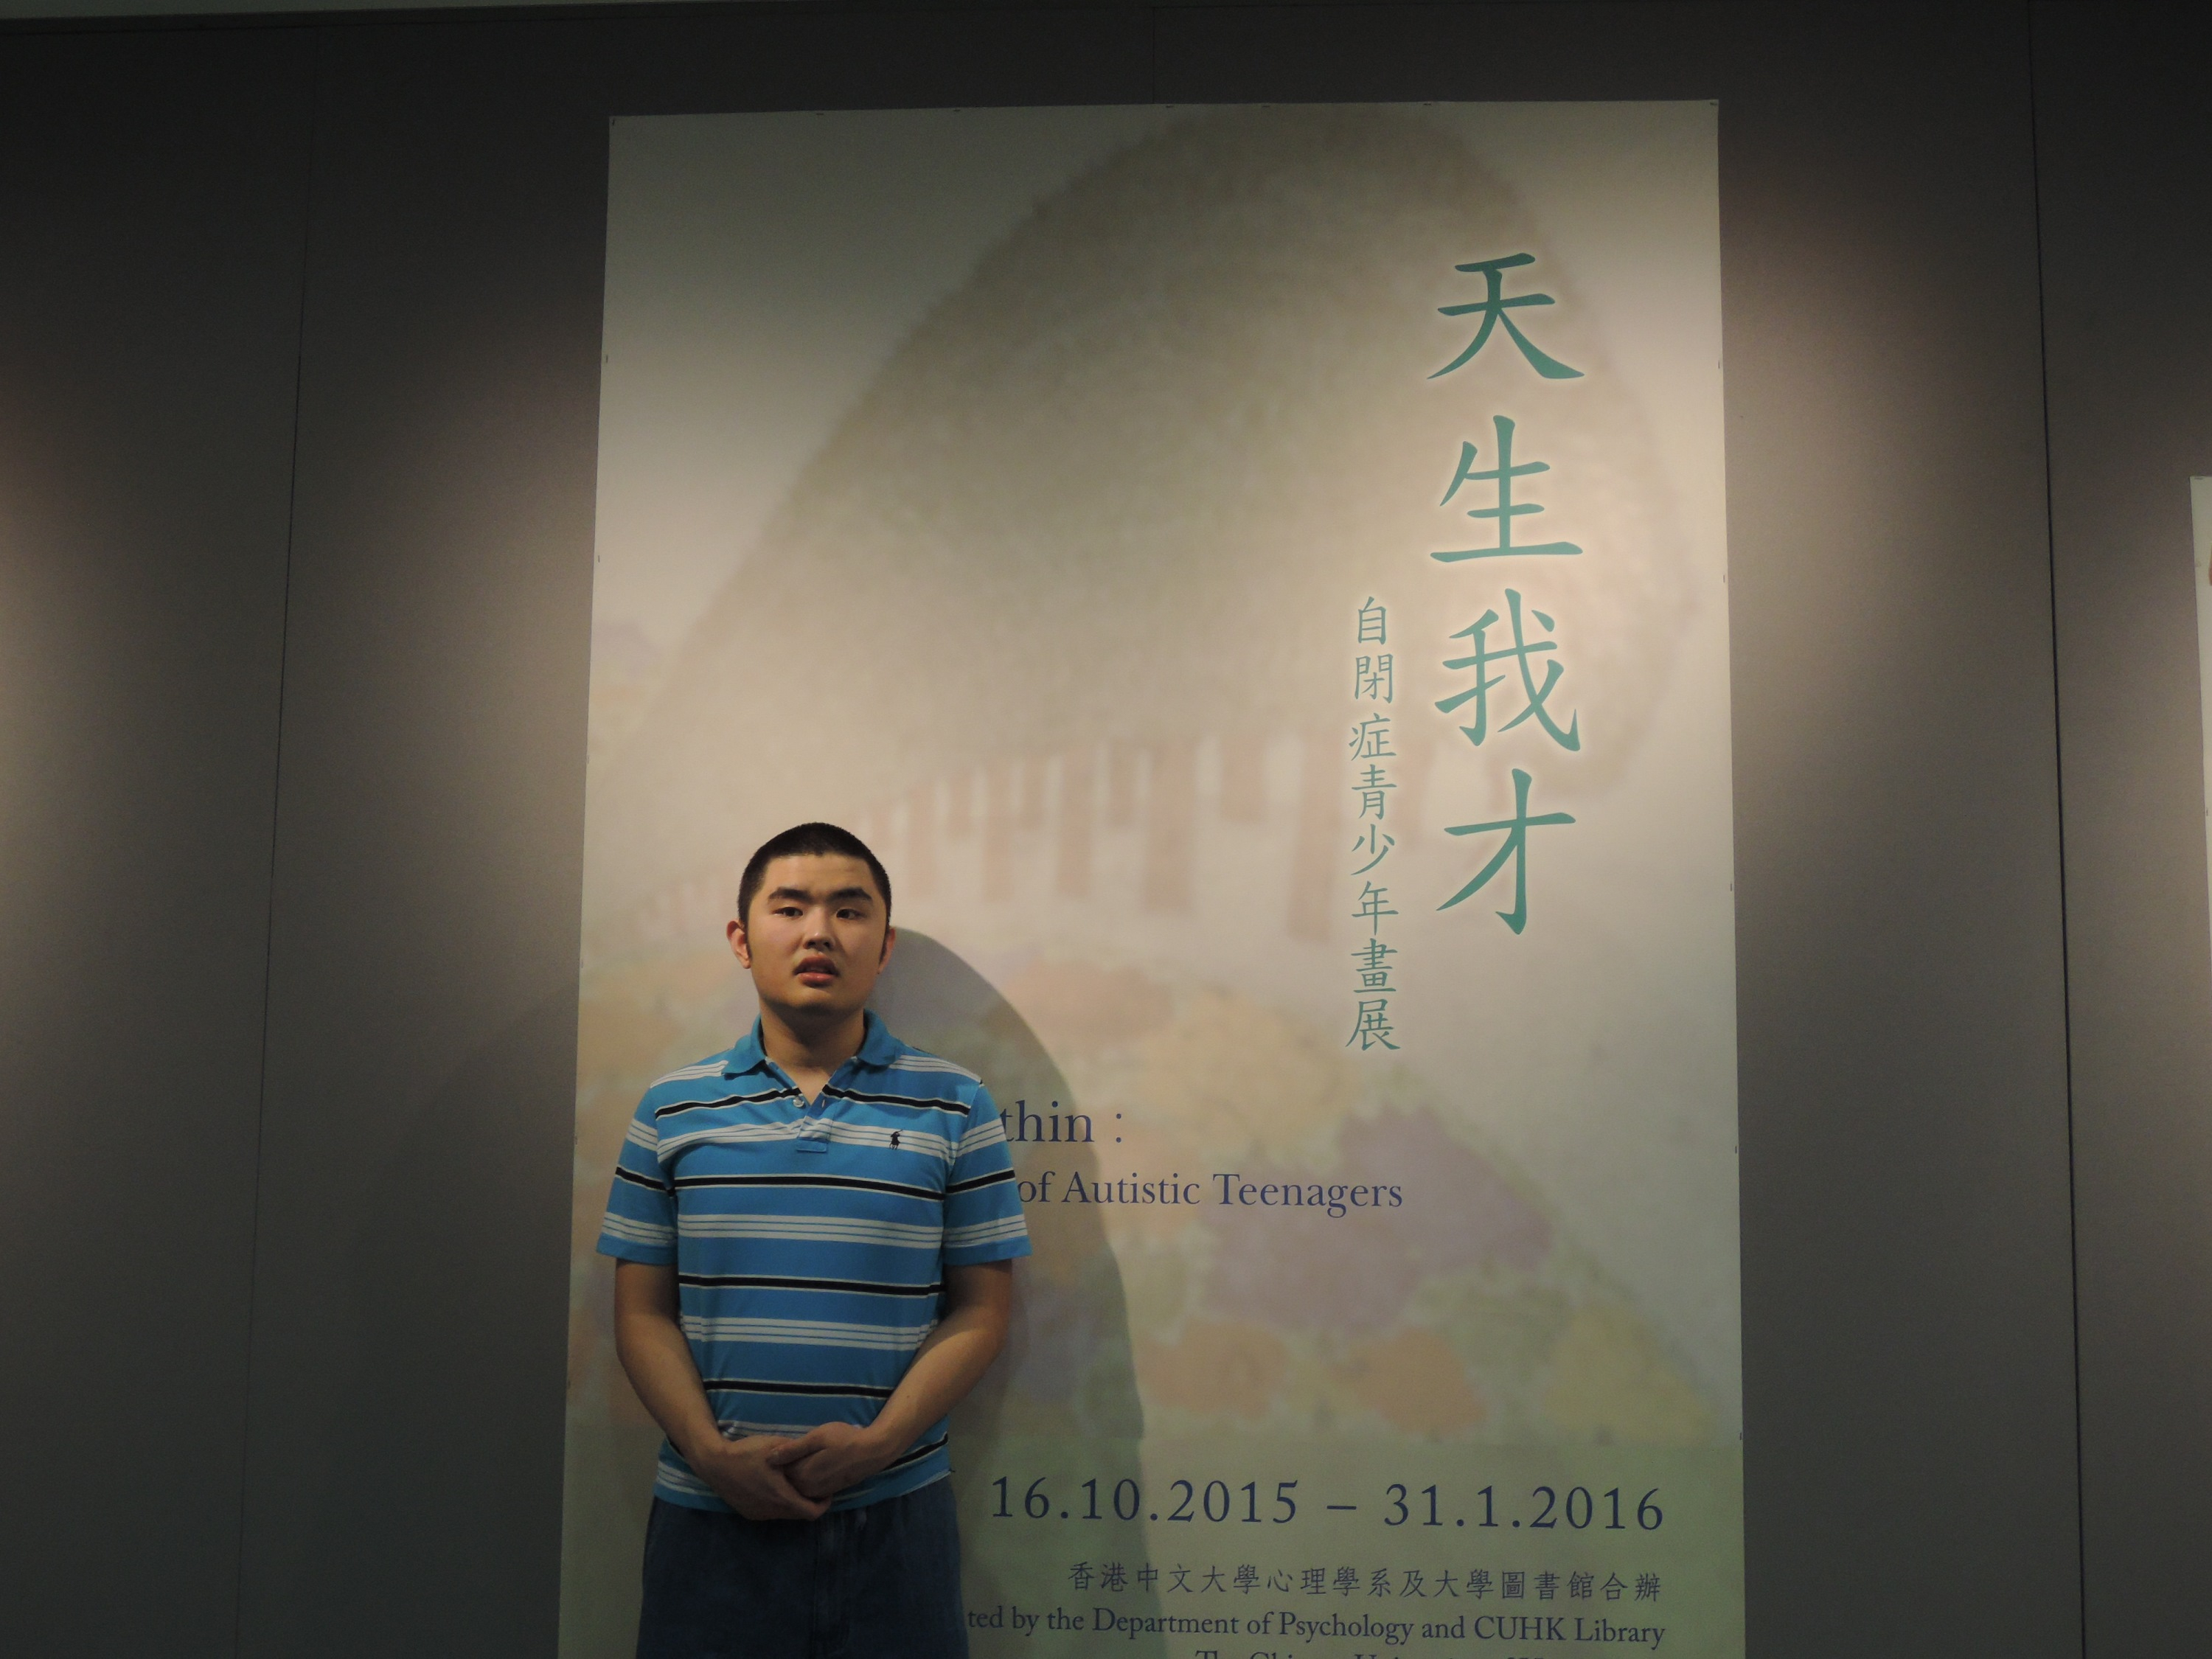 One of the Autistic painters, Thomas Ho.